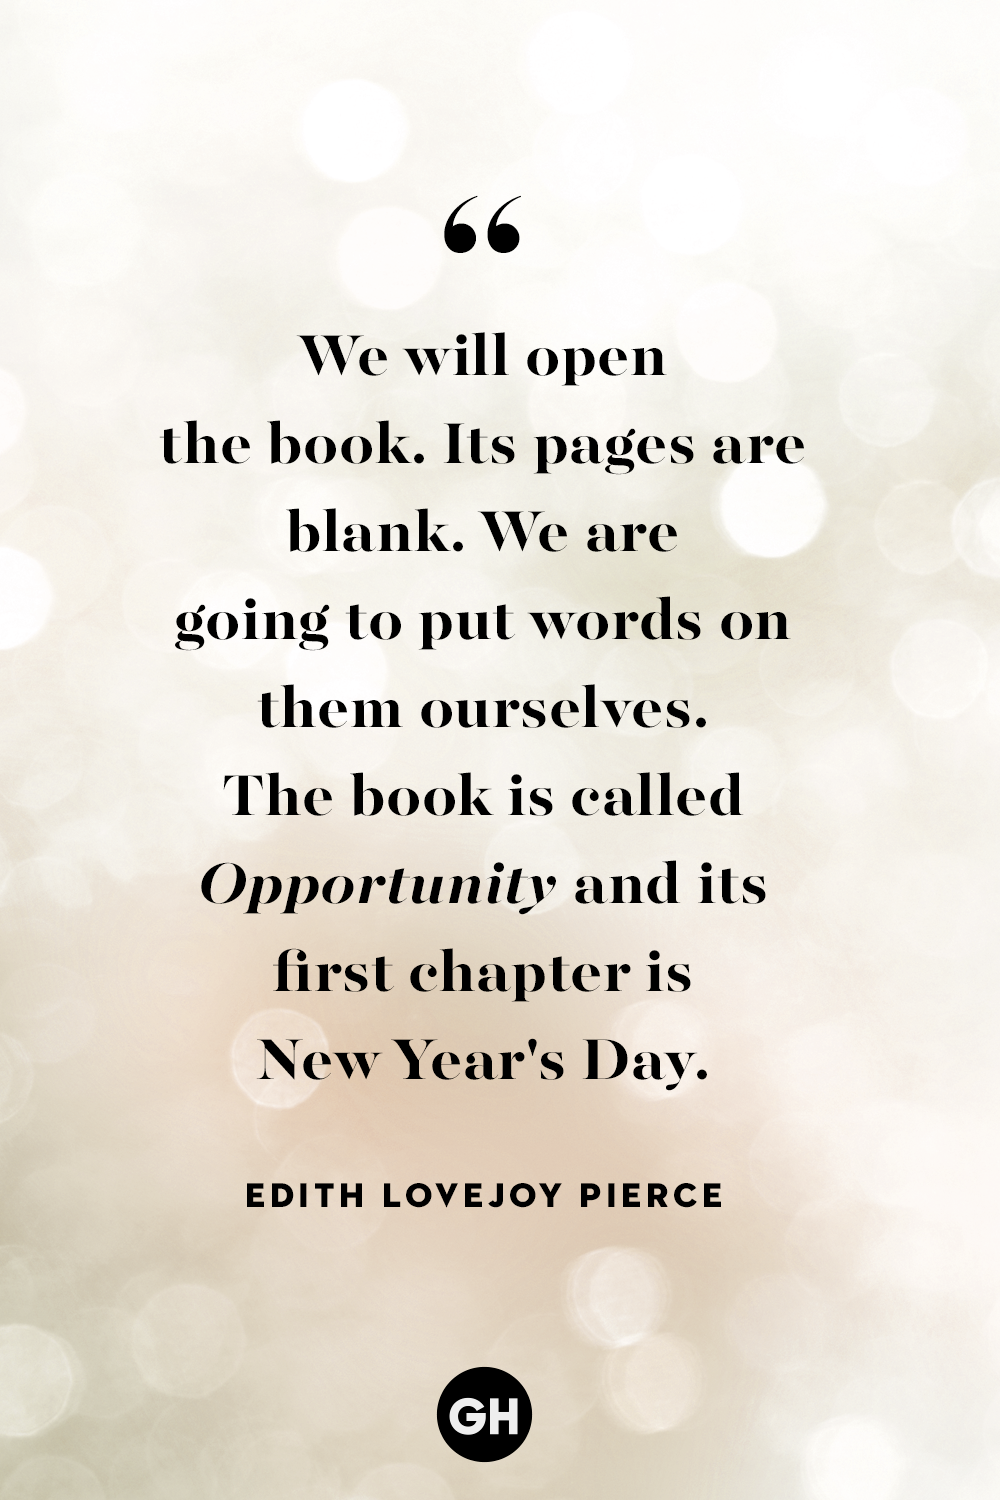 65 Best New Year Quotes 2021 - Inspiring NYE End of Year Sayings